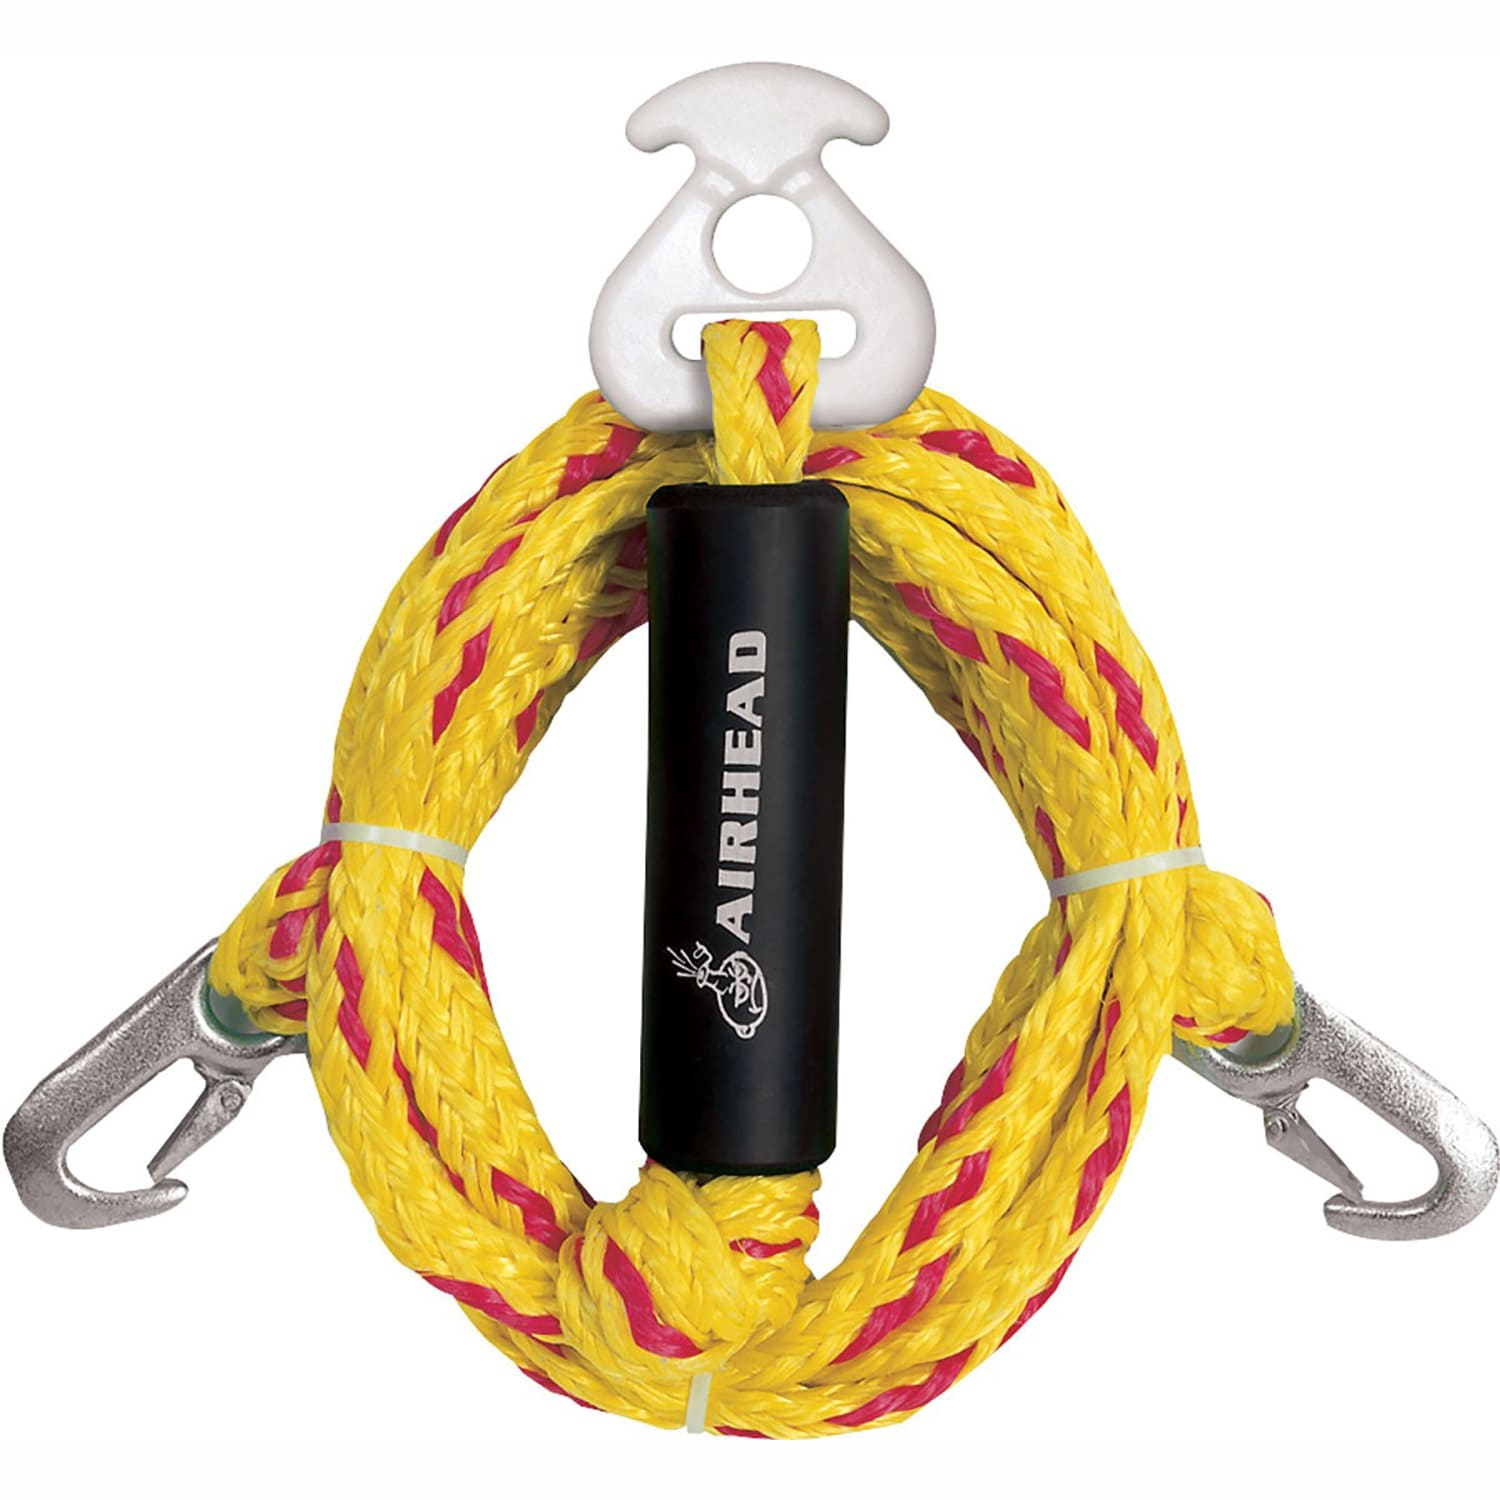 Image of Airhead Heavy Duty Tow Harness